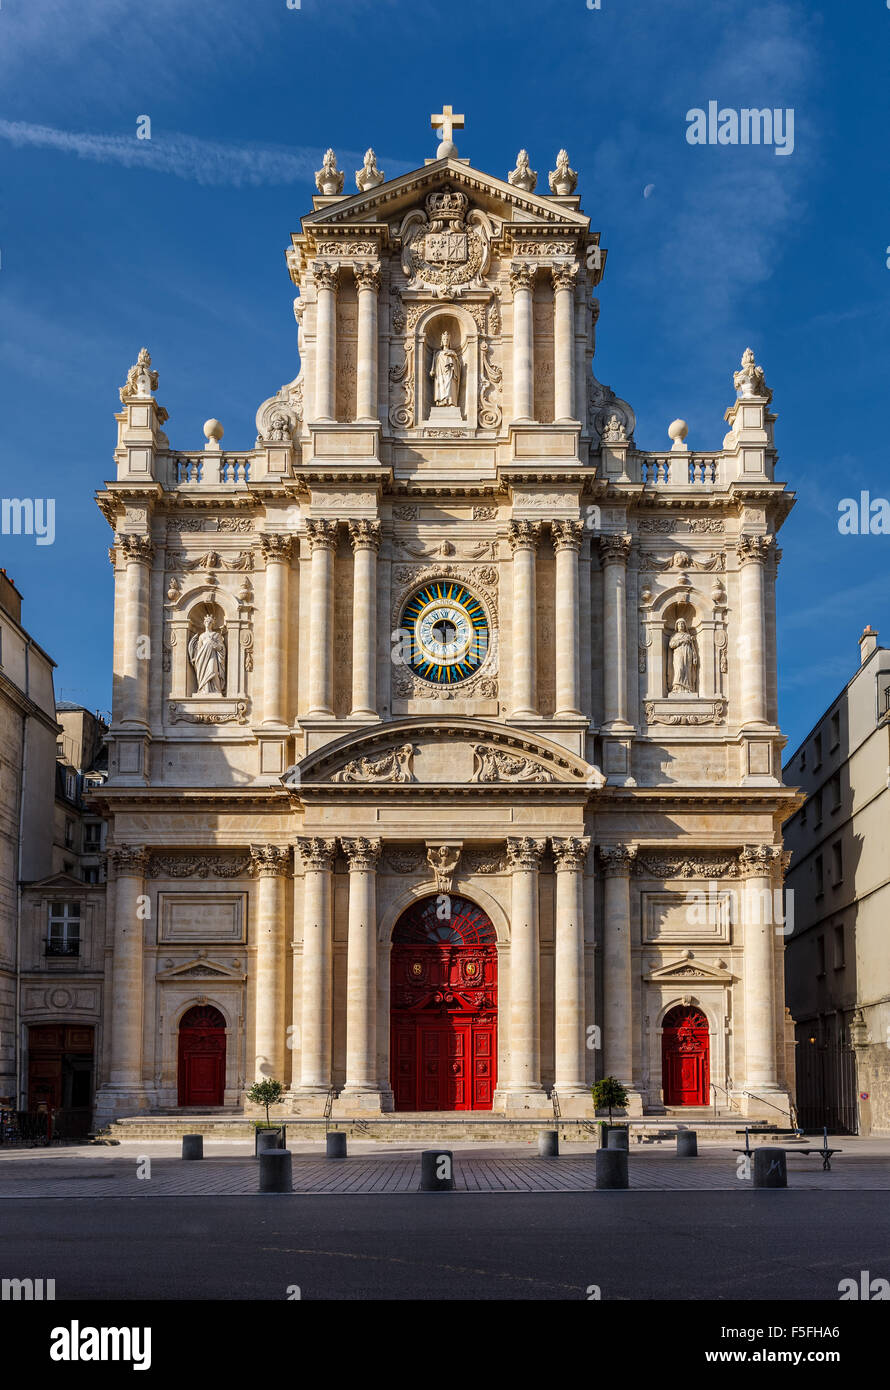 Facade of the church of Saint-Paul-Saint-Louis in the Marais neighborhood (4th arrondissement) of Paris, France. - Stock Image